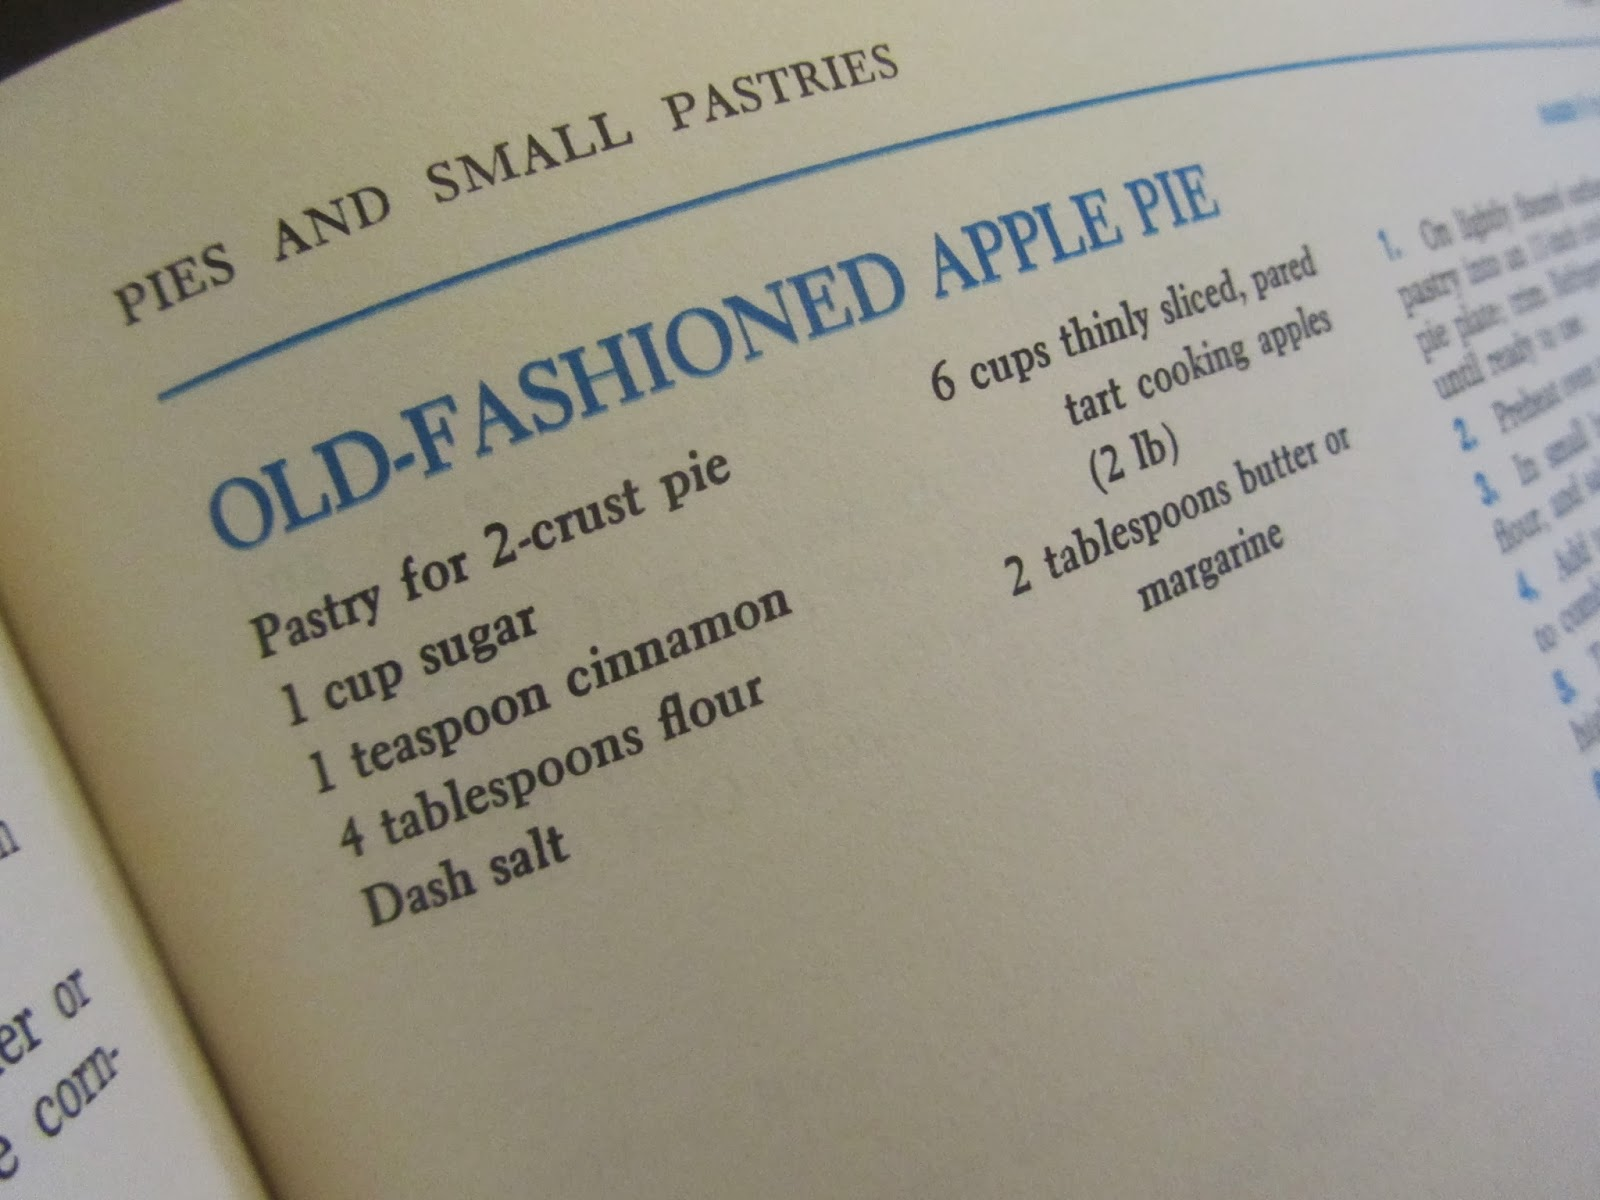 Old fashioned apple pie recipe ingredients